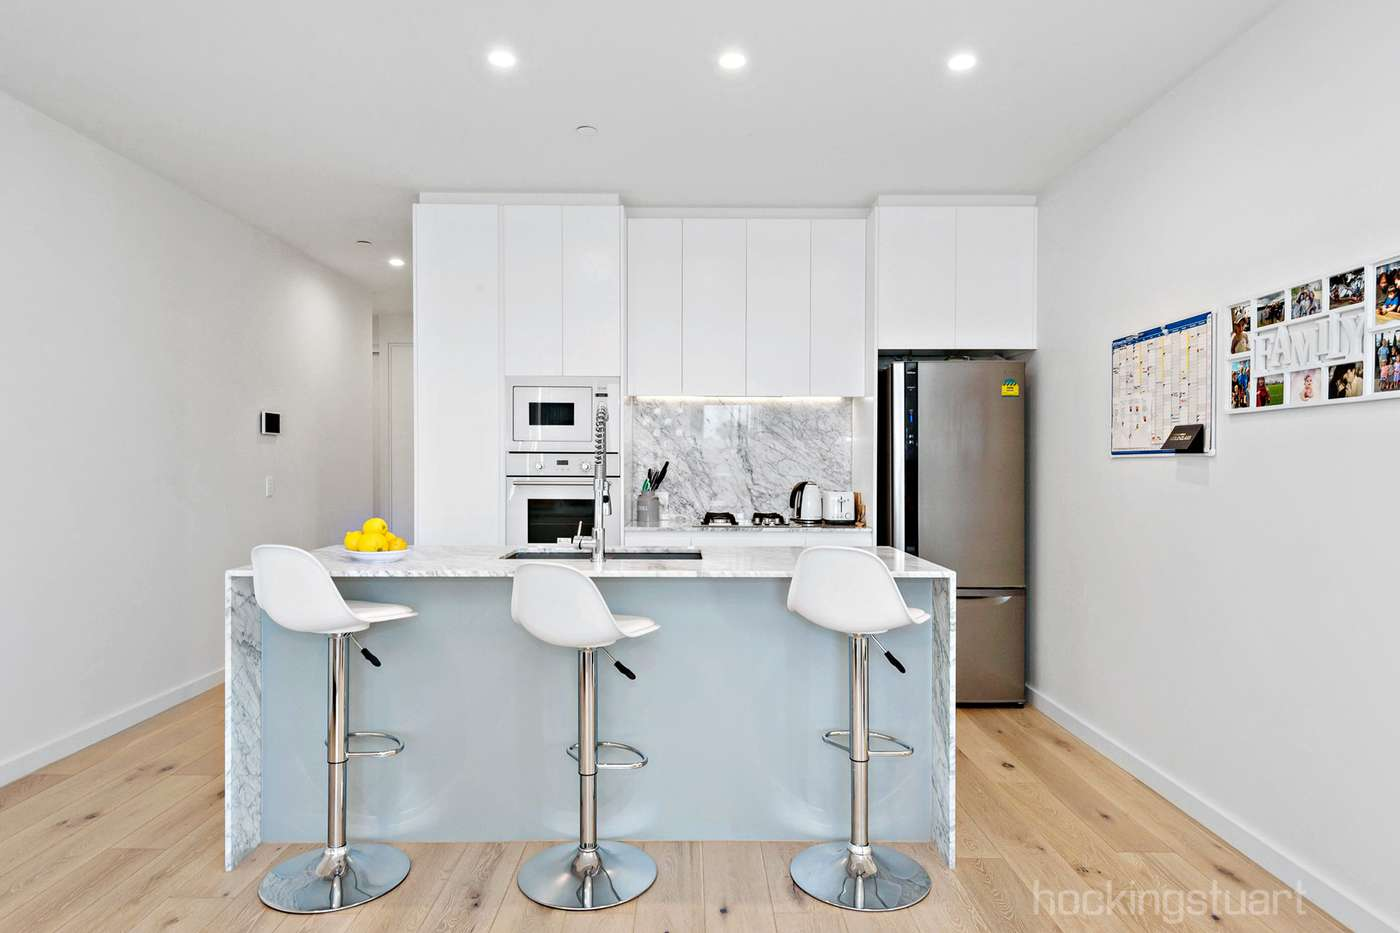 Main view of Homely apartment listing, 201/28 Jersey Parade, Carnegie, VIC 3163